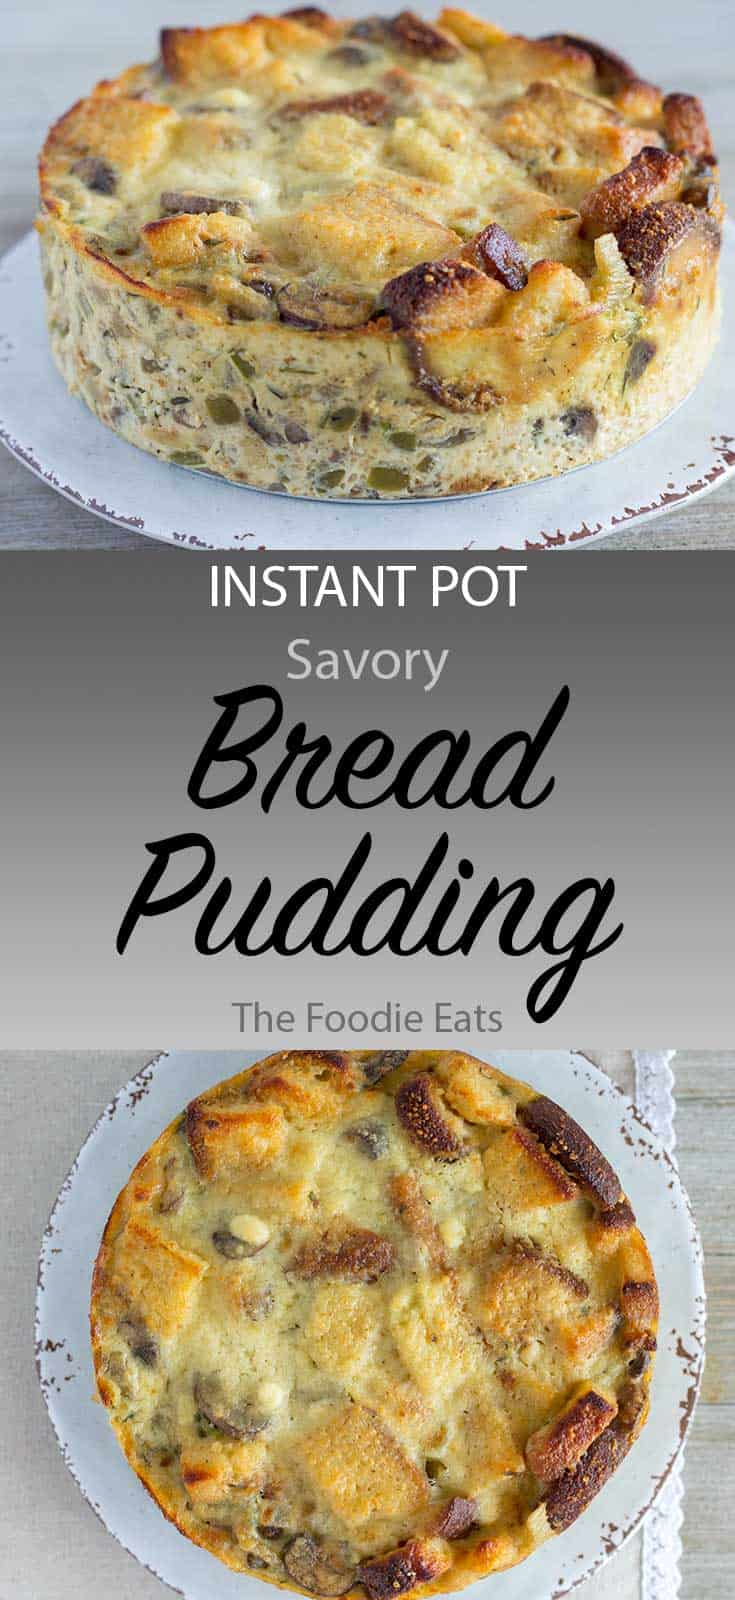 Instant Pot Bread Pudding - Savory with Mushrooms and Parmesan | The Foodie Eats